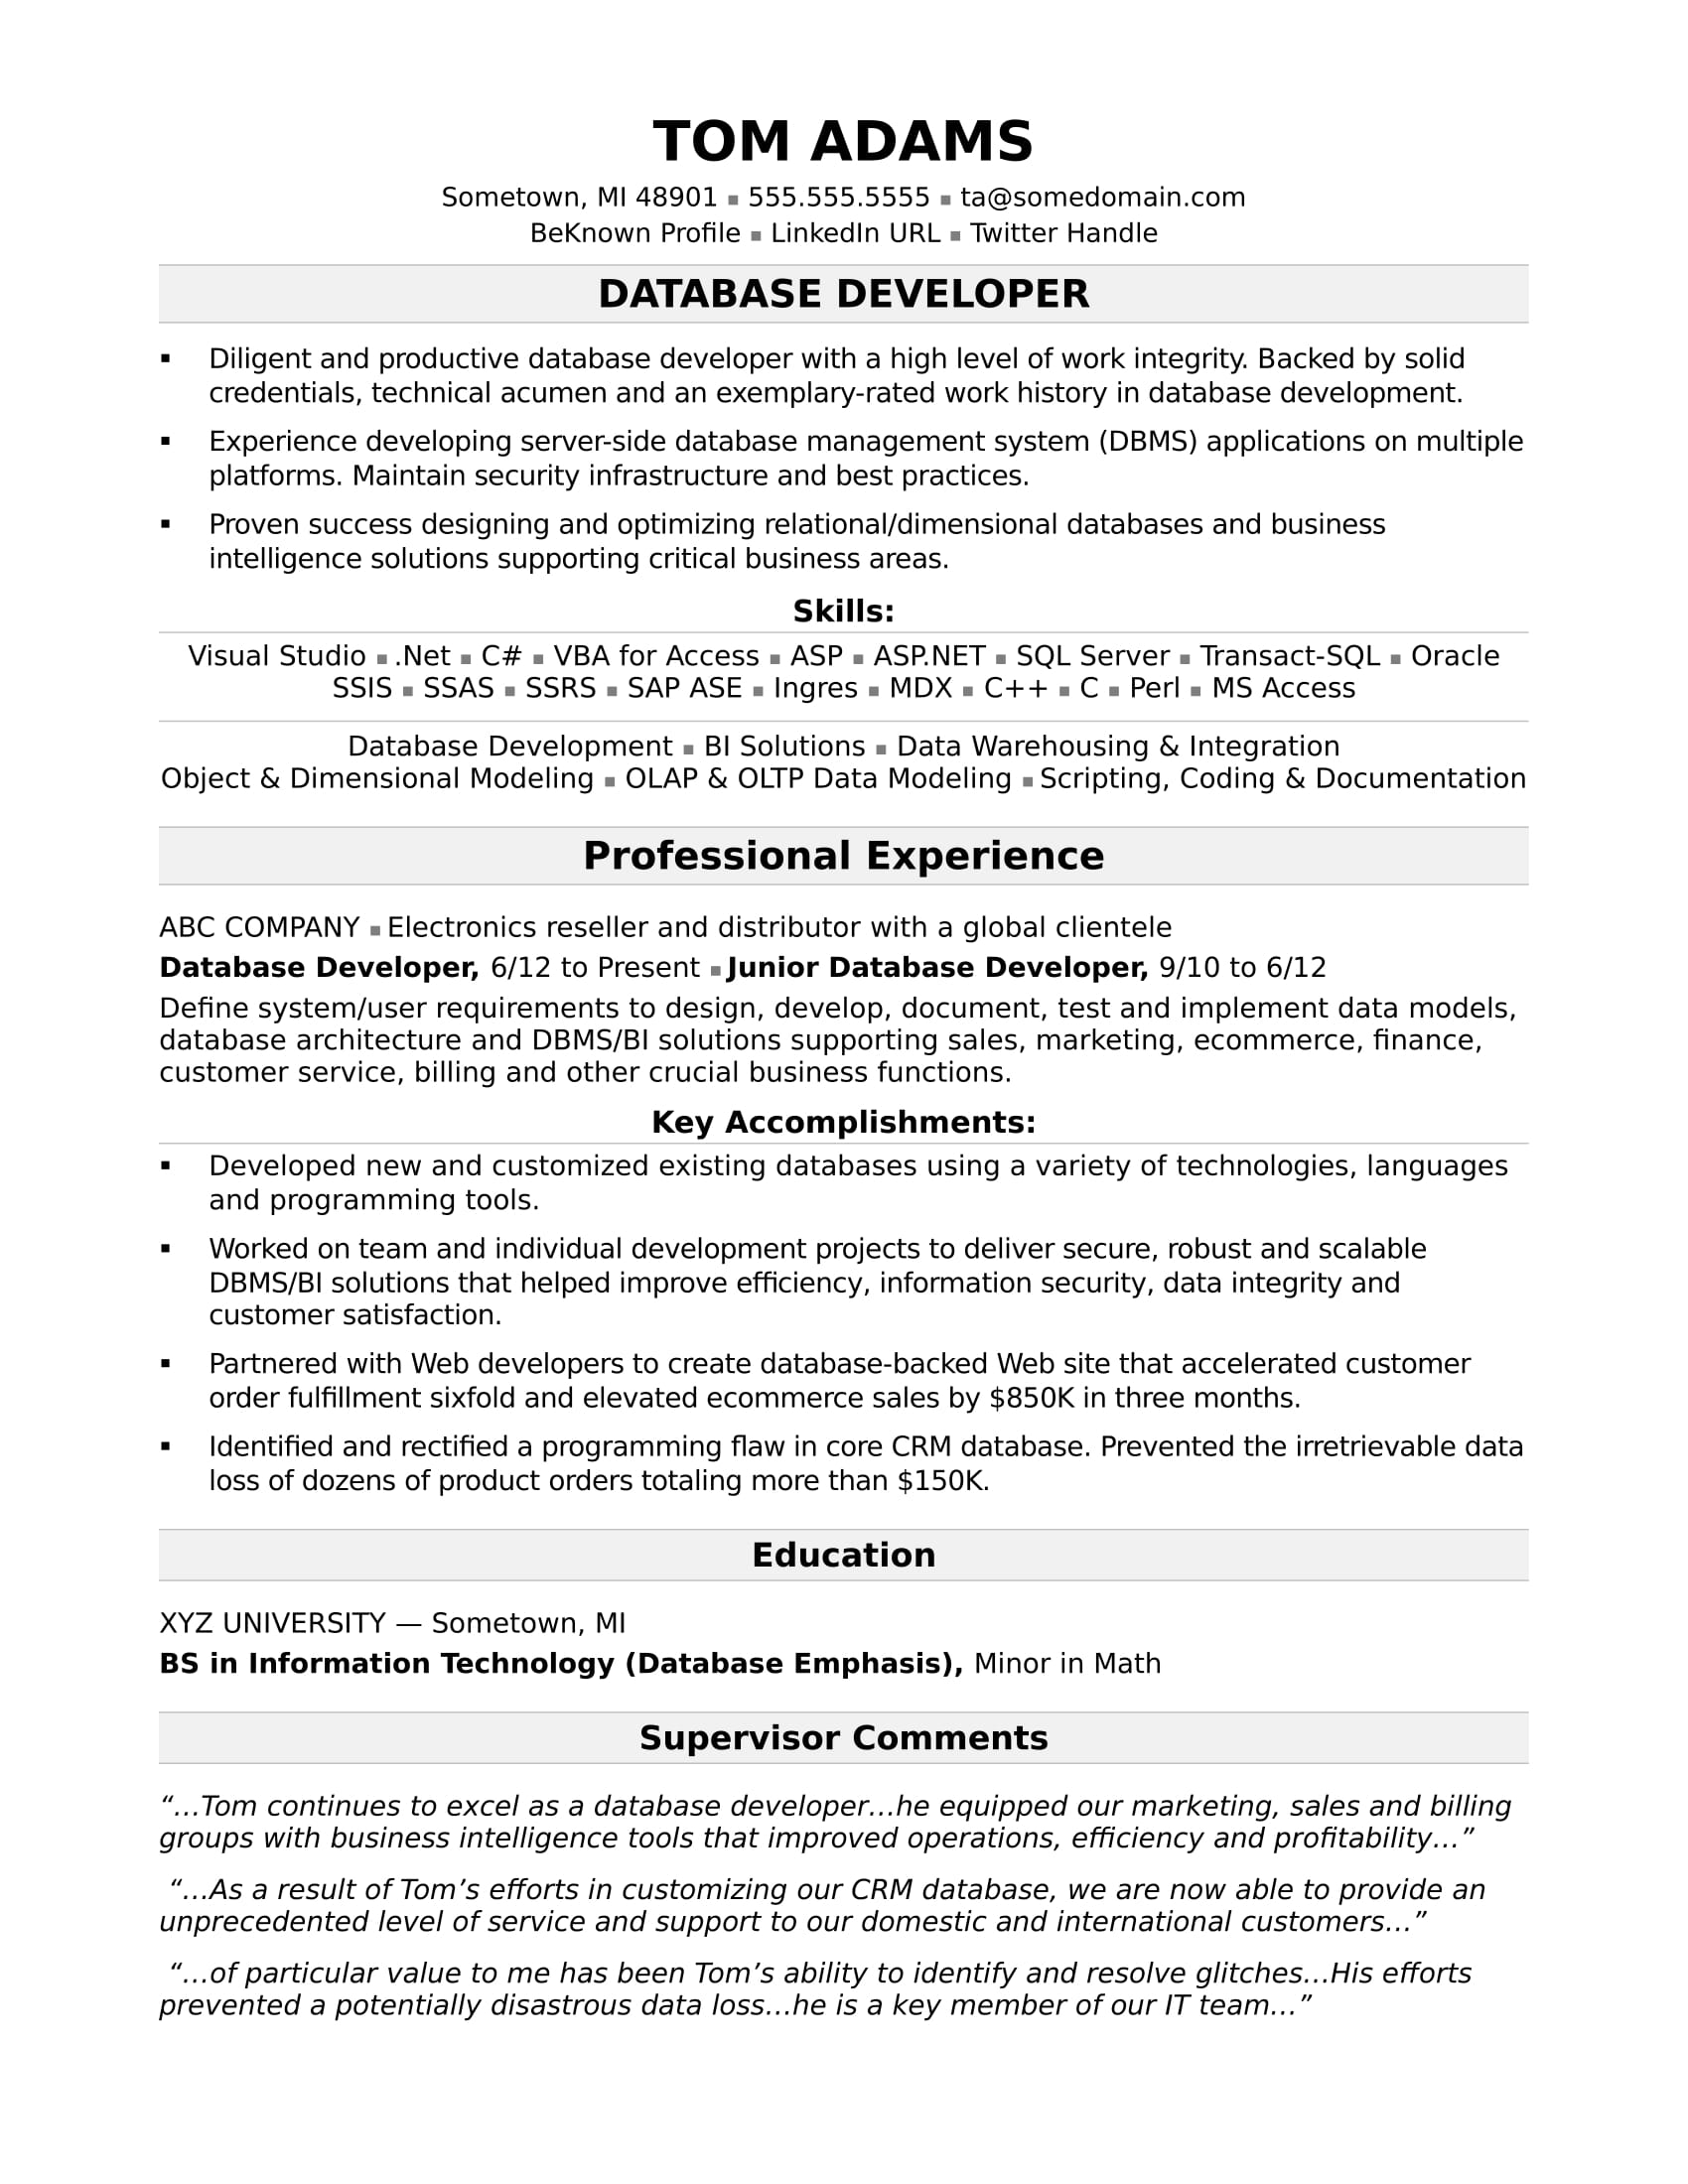 Sample Resume for a Midlevel IT